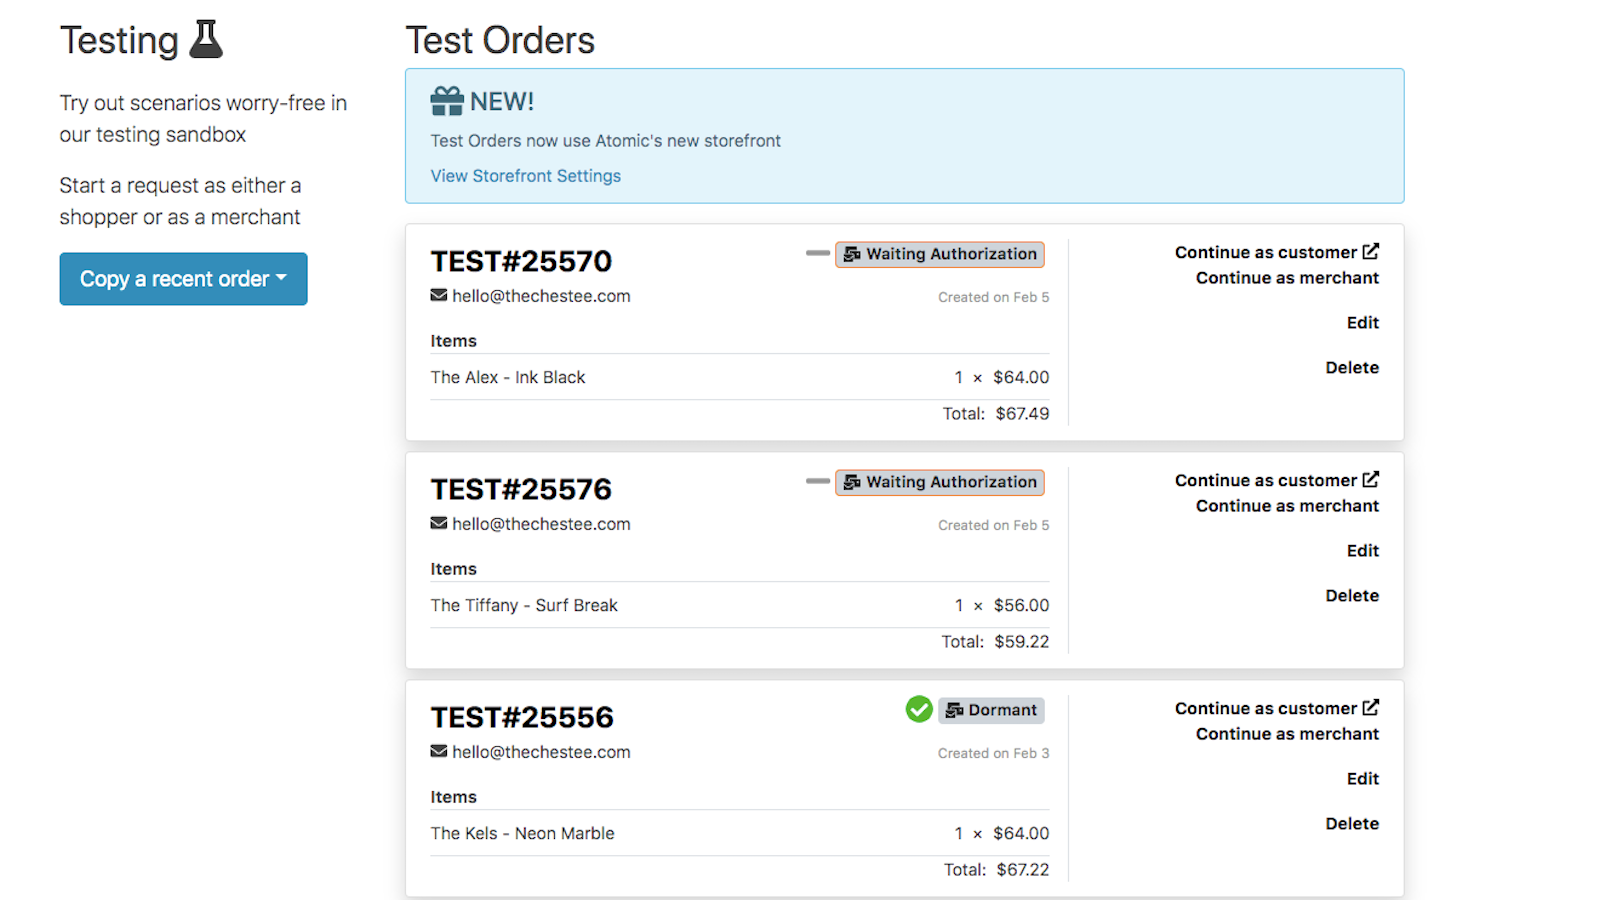 Test sandbox to test any return before going live